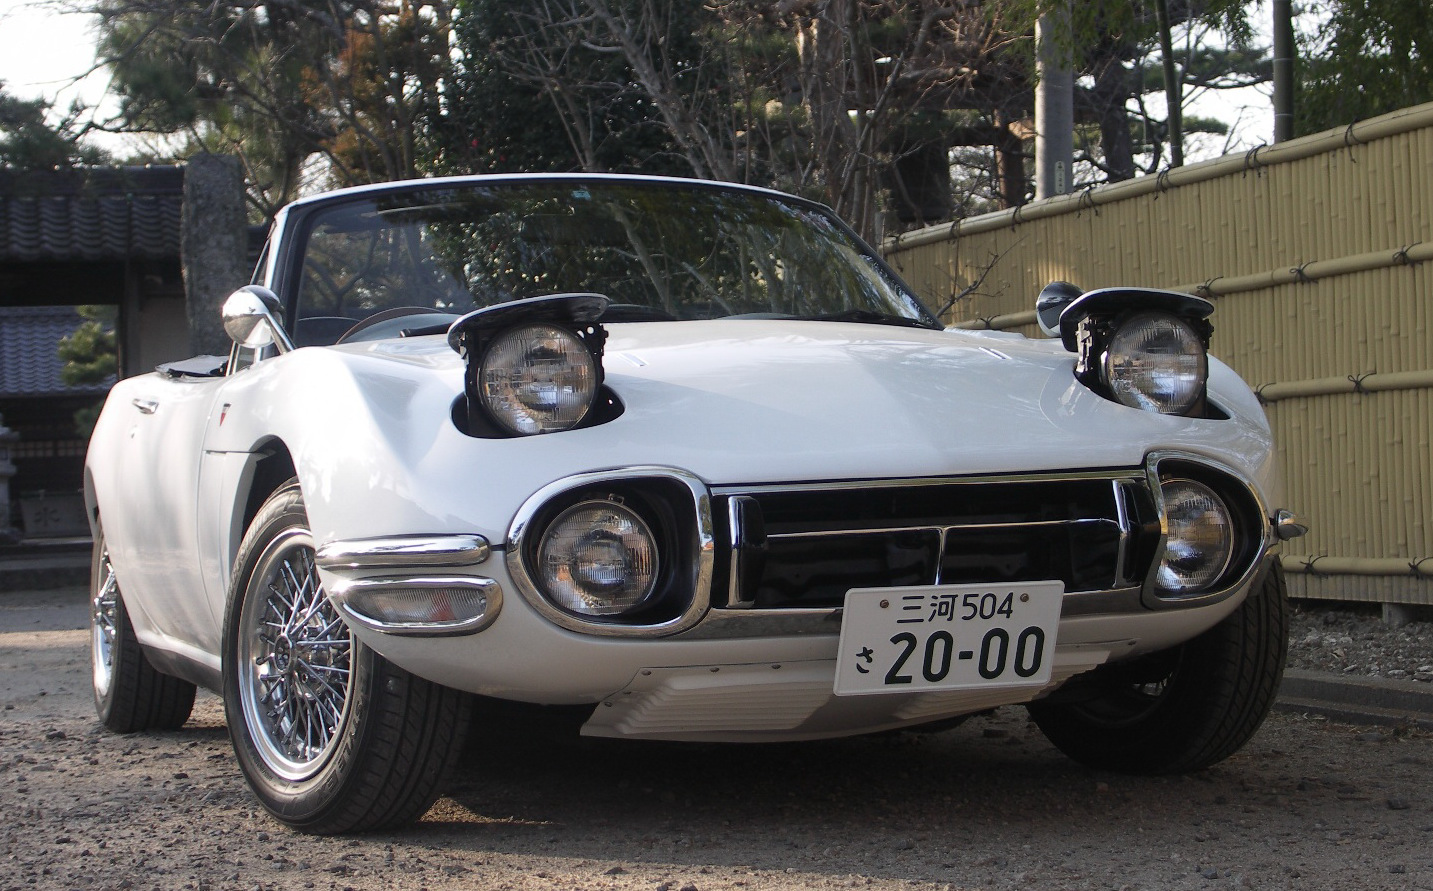 Toyota 2000 Gt Conversion Kit For Miata Mx5 Look At This